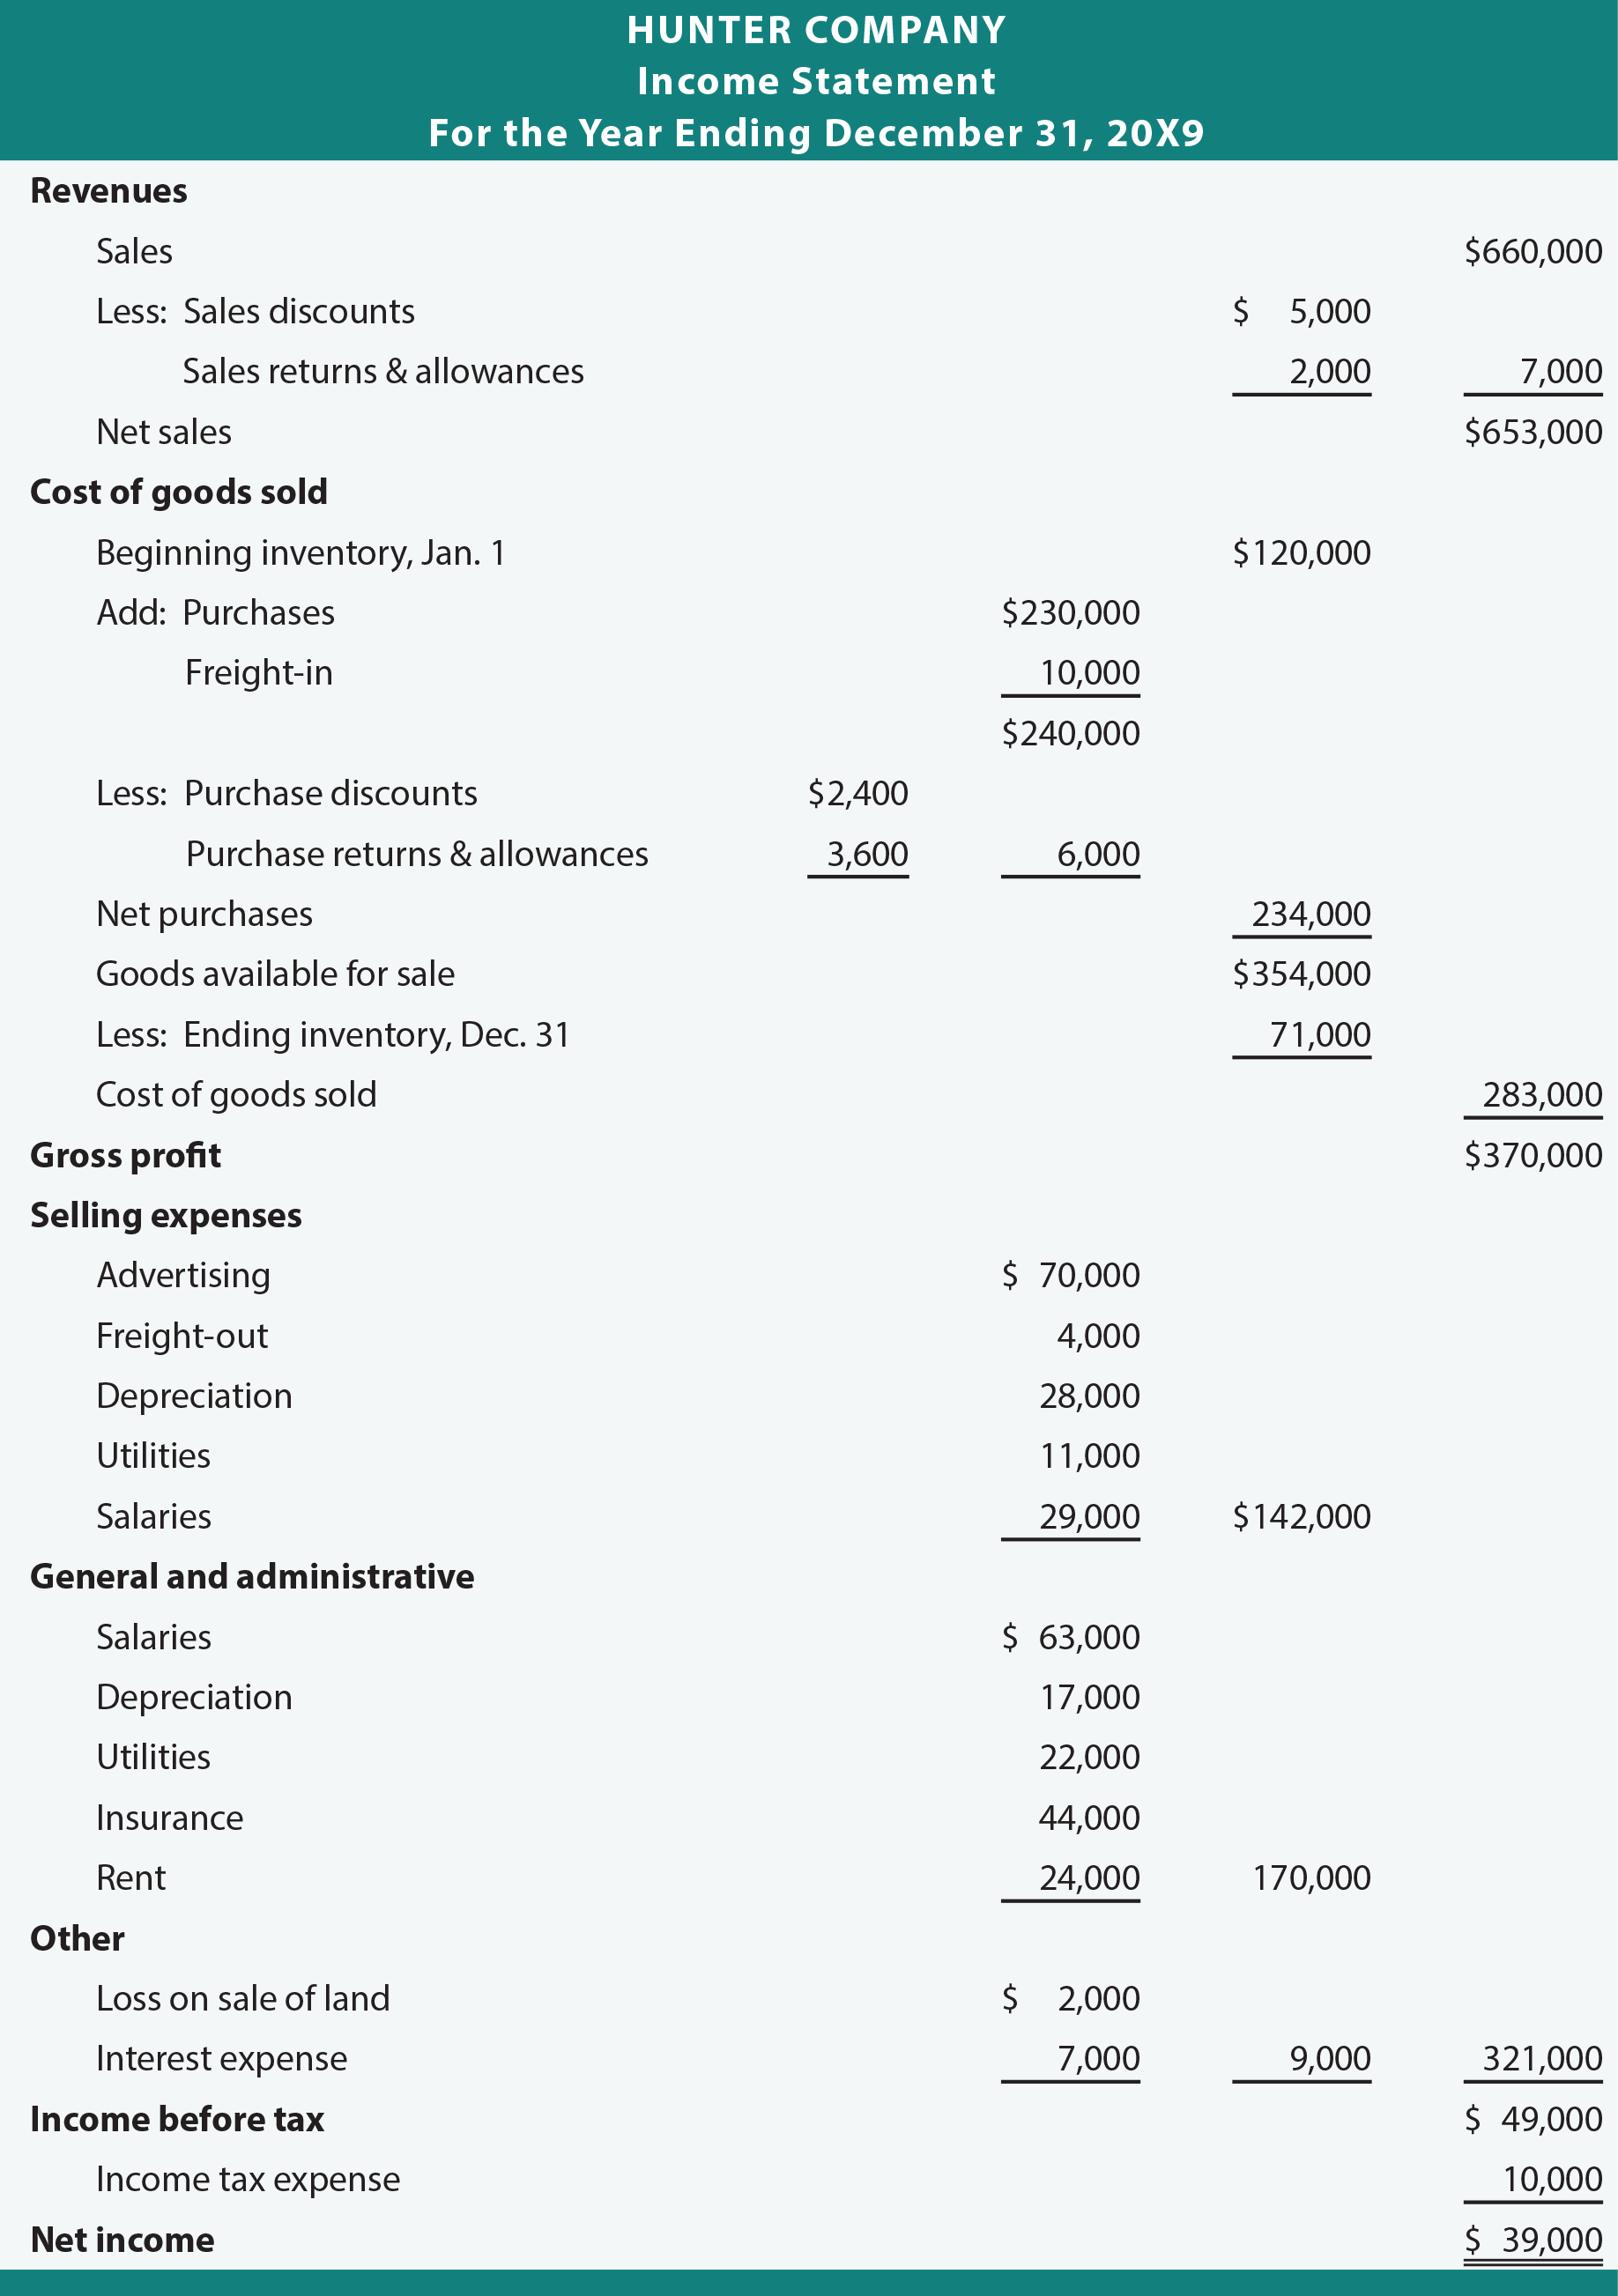 Income Statement Enhancements principlesofaccounting.com